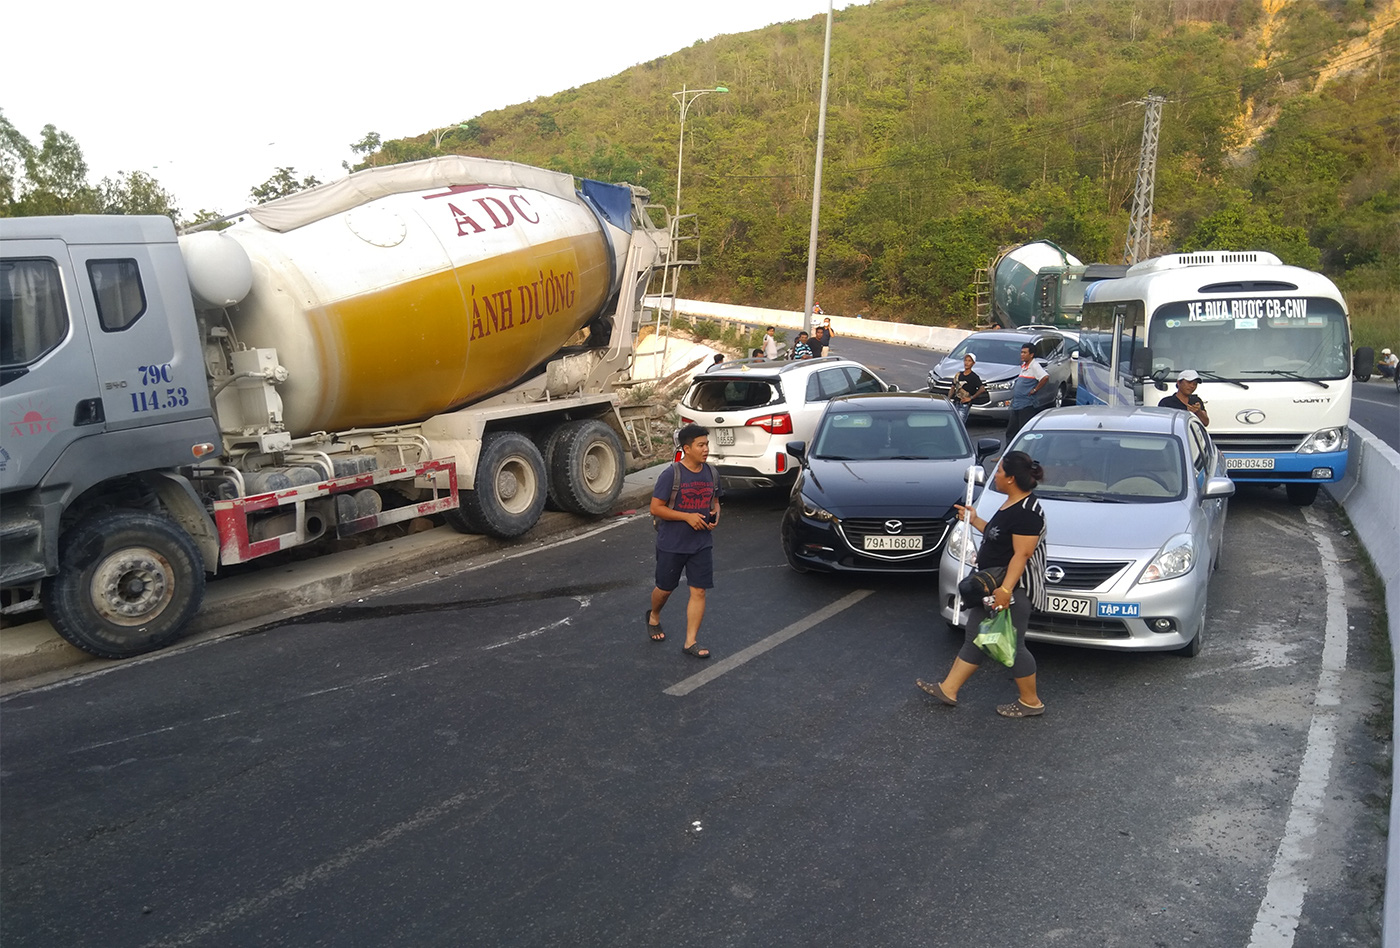 Pile-up on mountain pass after van crashes into median strip in Nha Trang